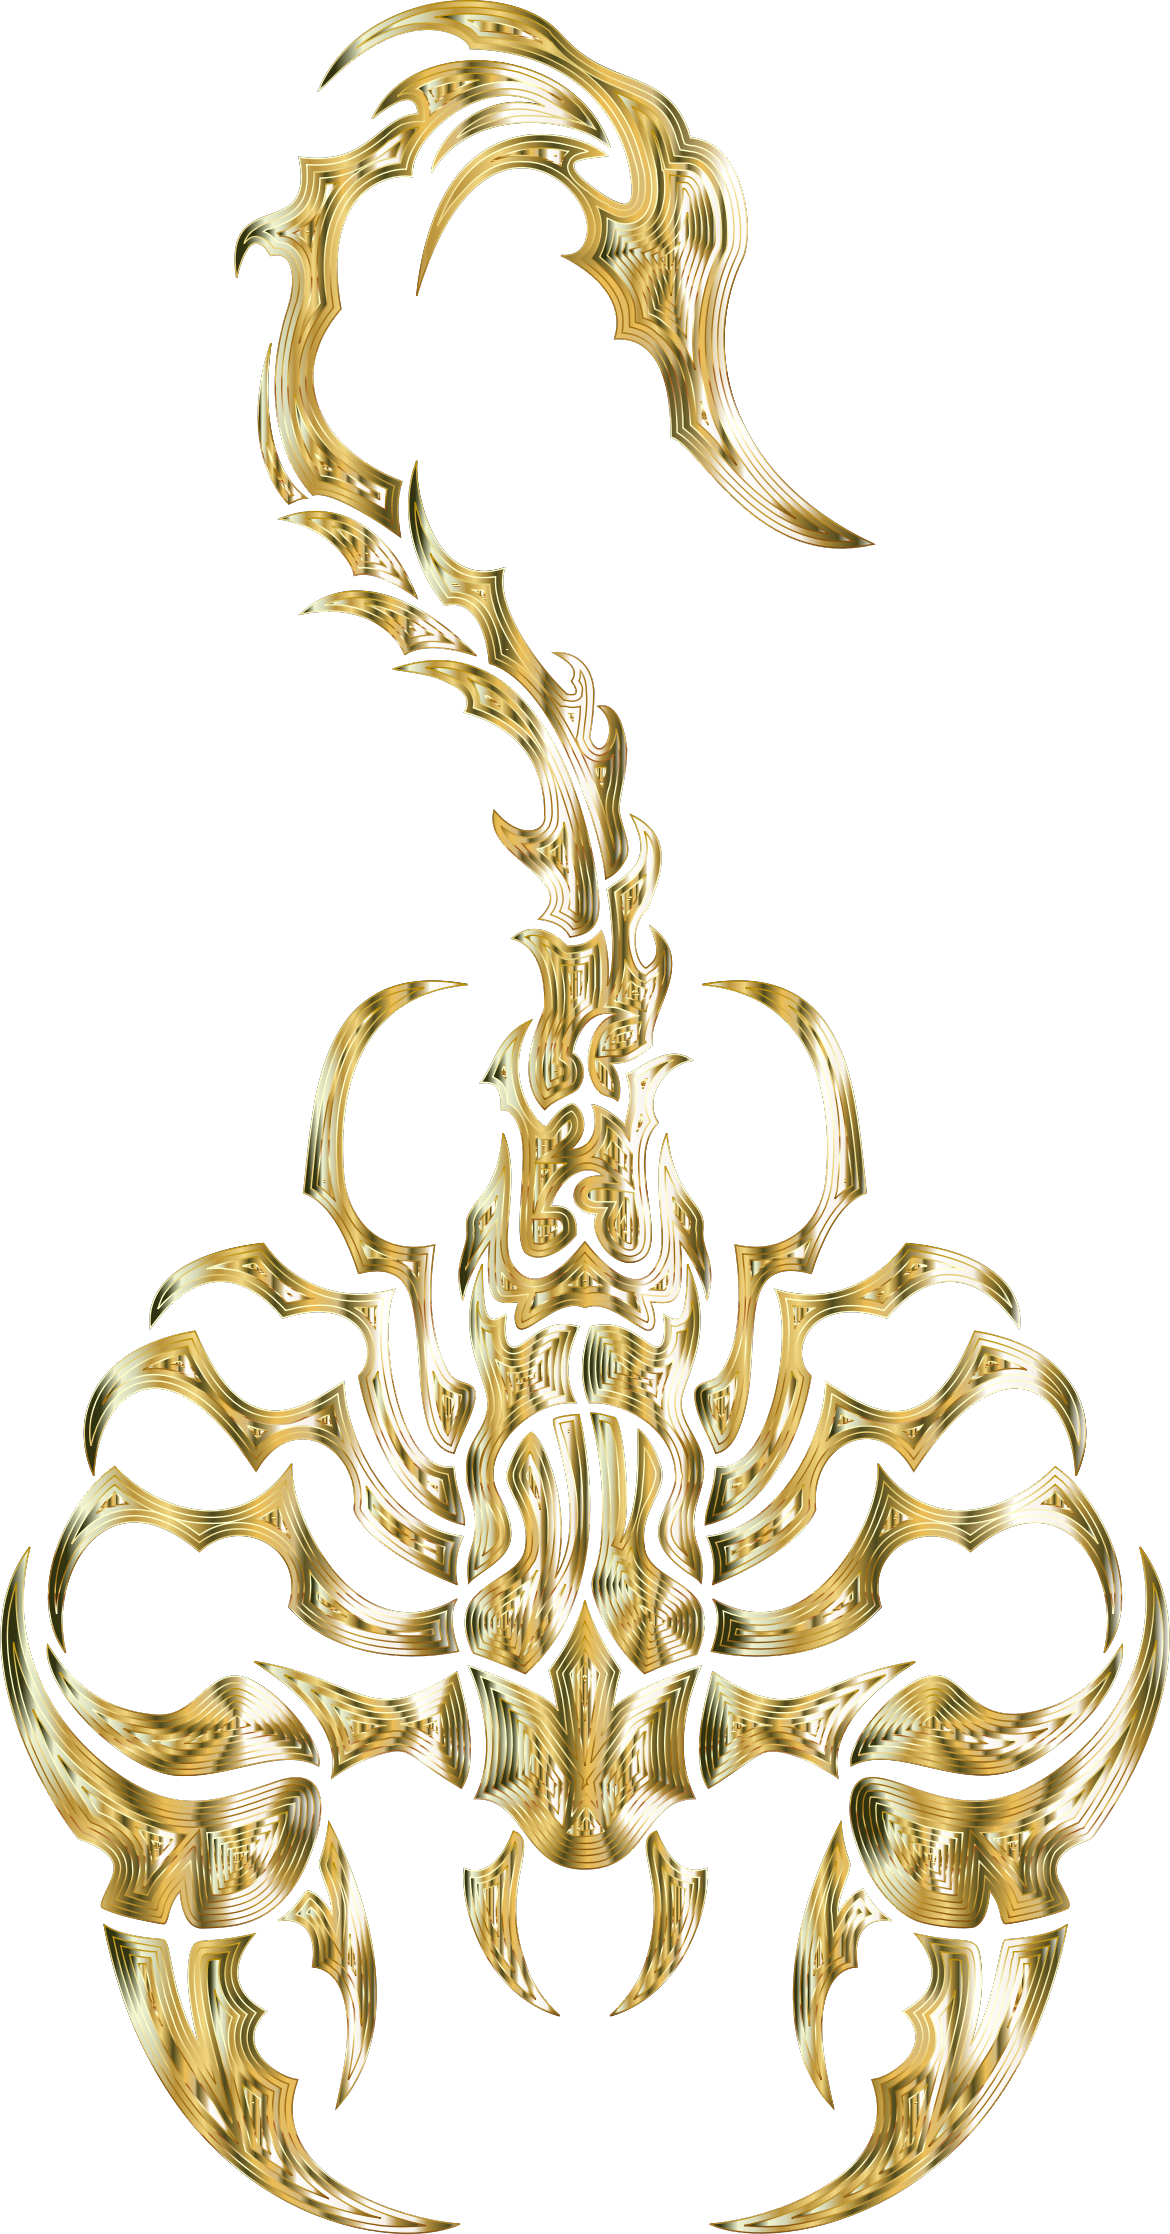 Sleek Tribal Scorpion Gold 2 by GDJ